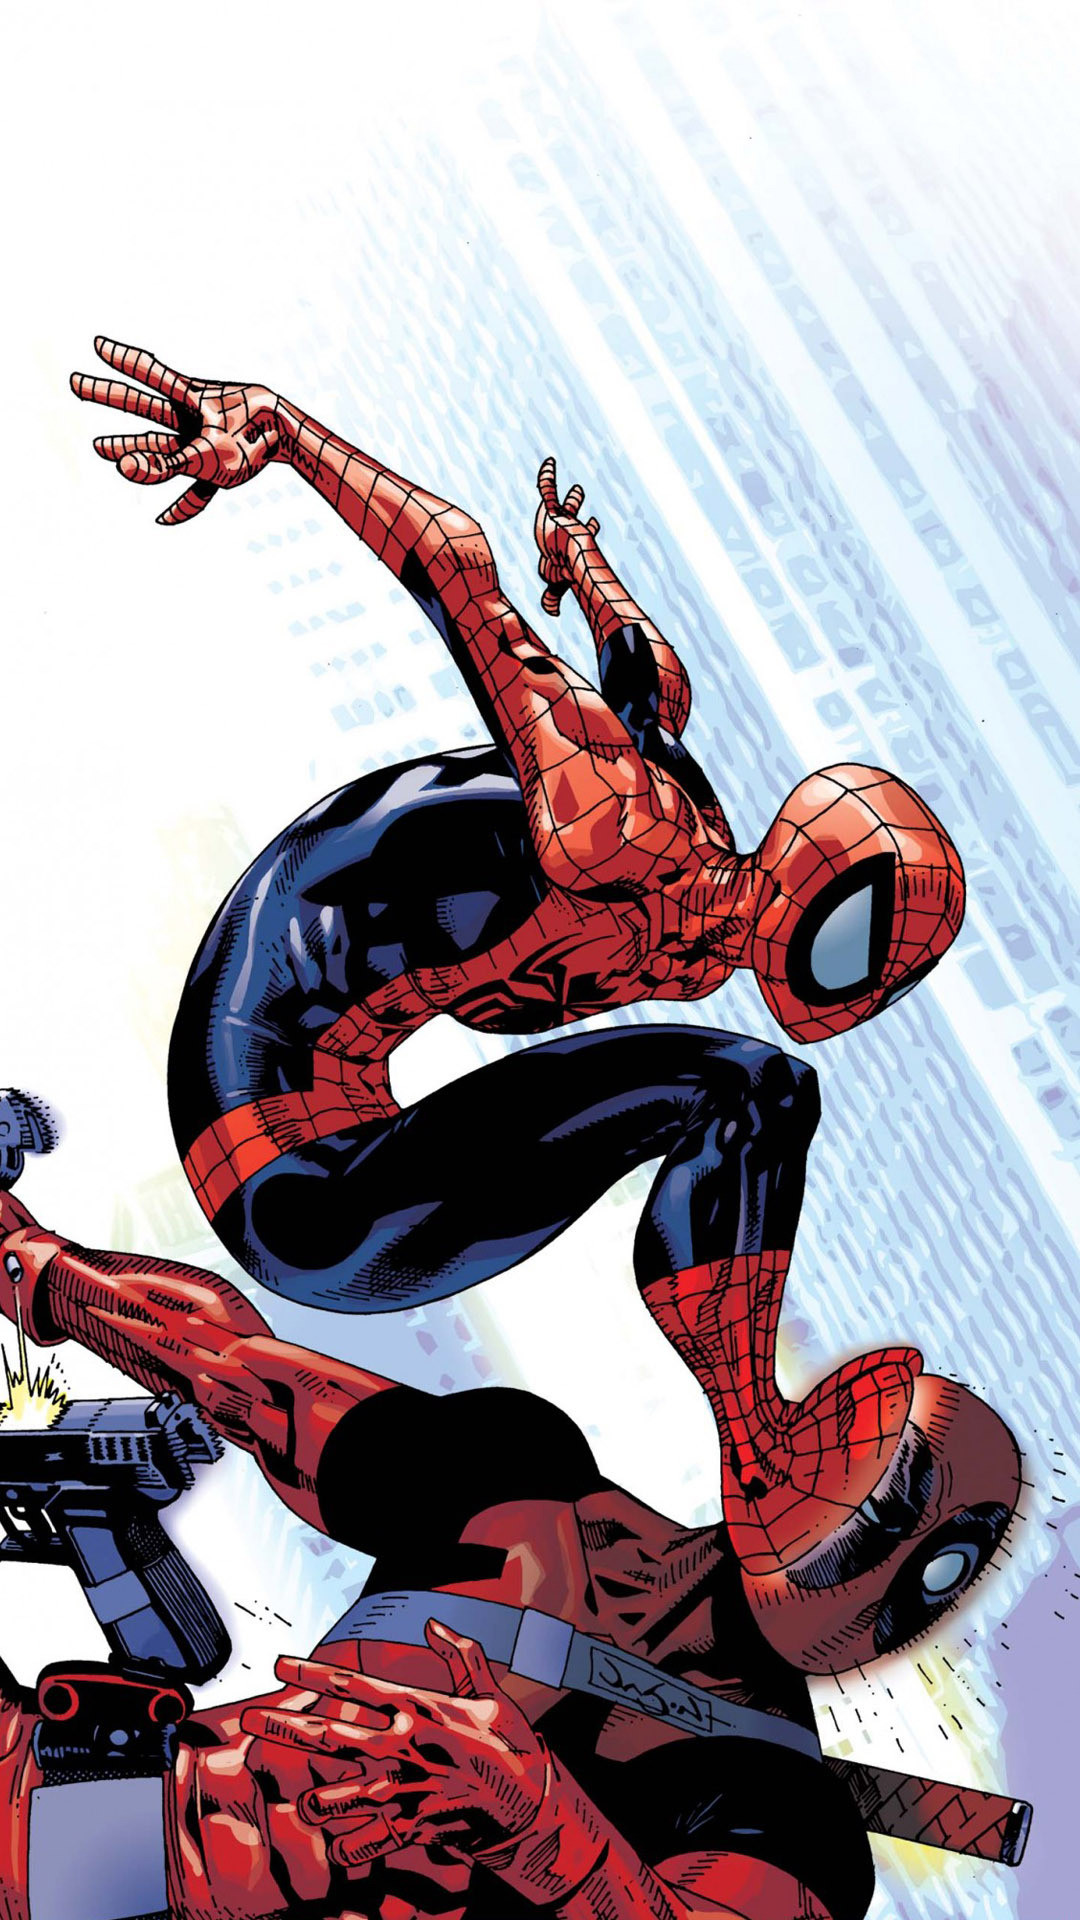 2560x1440 Spider Man Wallpapers Deadpool And Spiderman Wallpapers Gallery Image Mrfab